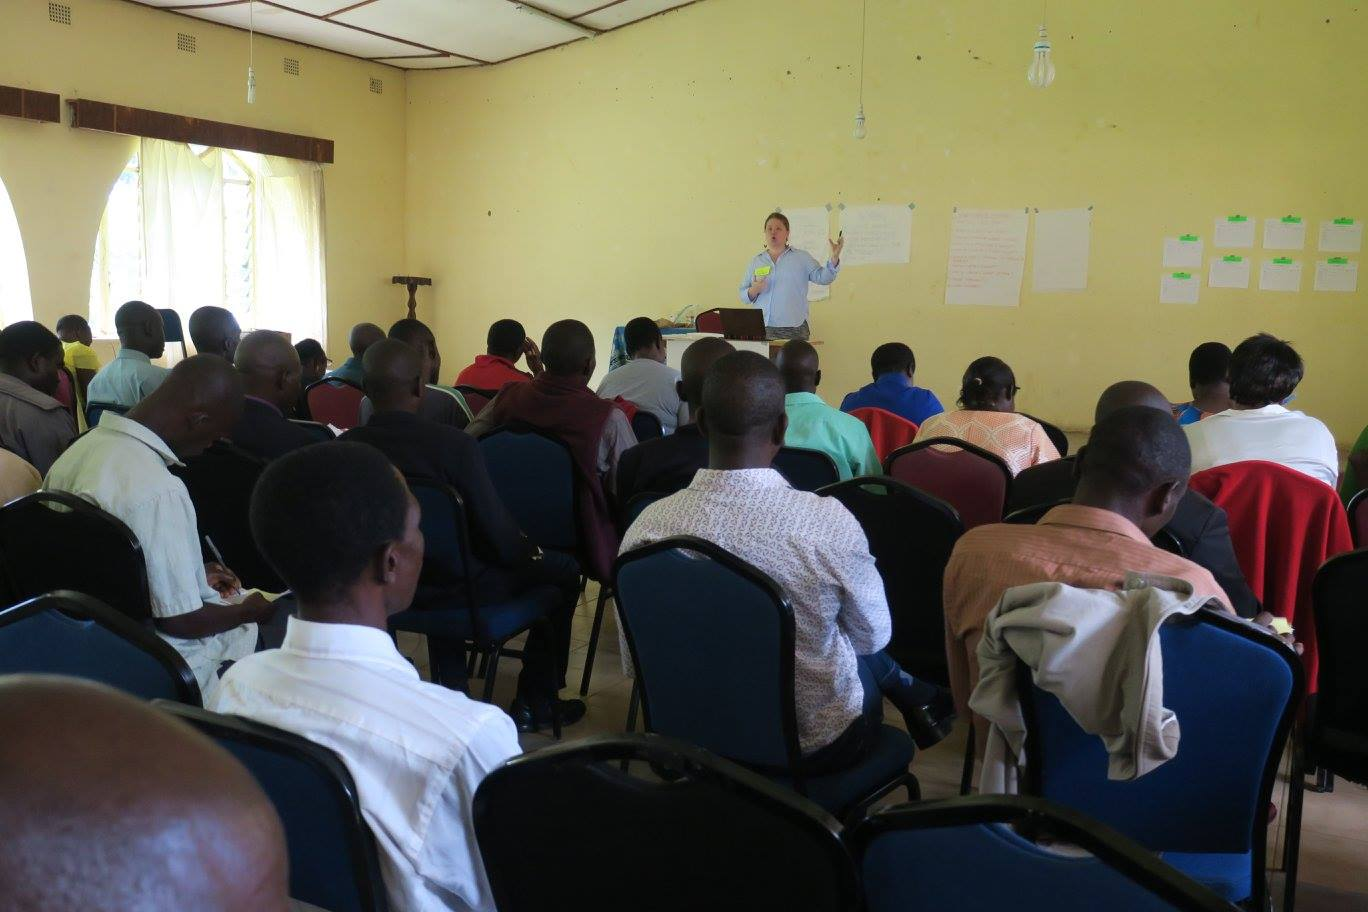 During our time at Chongoni with the Area Representatives for Malawi Matters, I have a two part afternoon presentation on how to apply for grants. As the model of Malawi Matters shifts focus to the community level, it will be essential that Area Reps and Regional Reps know how to find and win money to complete their projects!